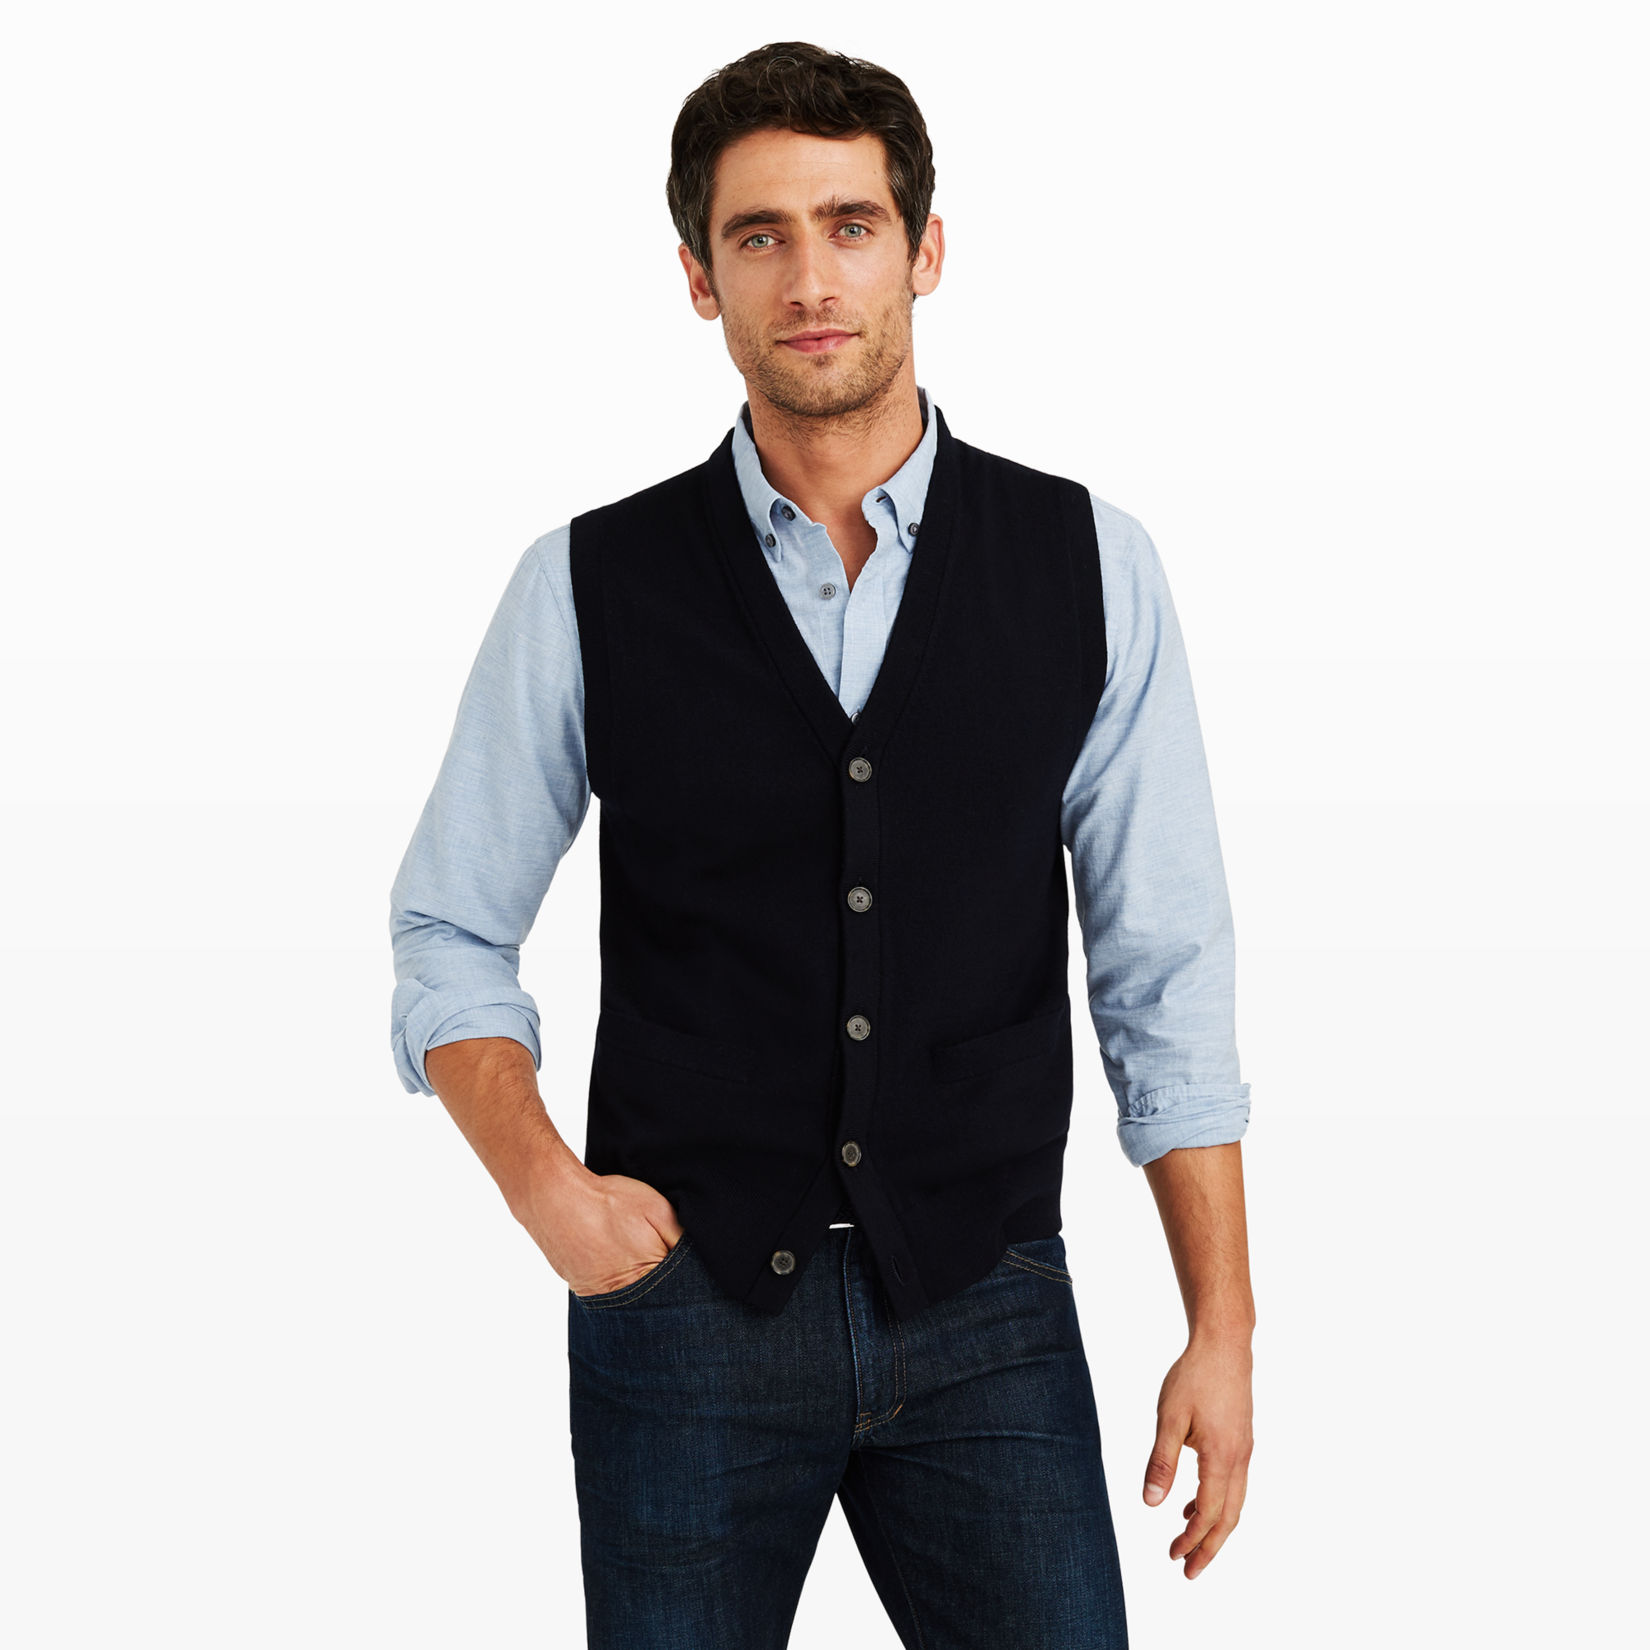 Sweater Vest Over Dress Shirt